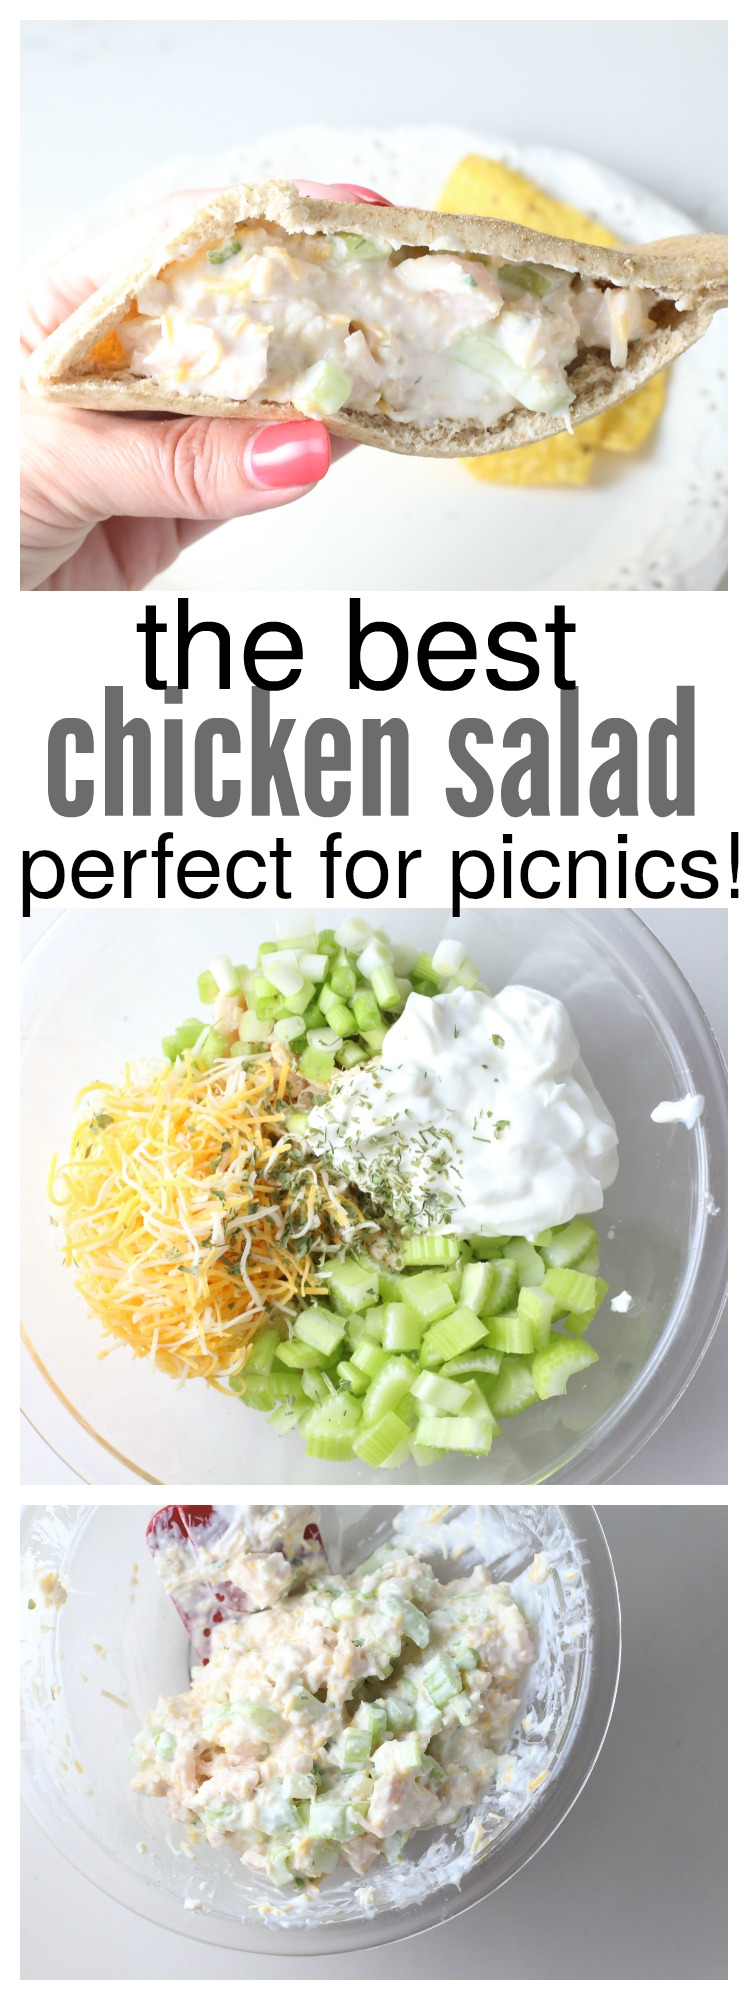 The Best chicken salad recipe - perfect for picnics!